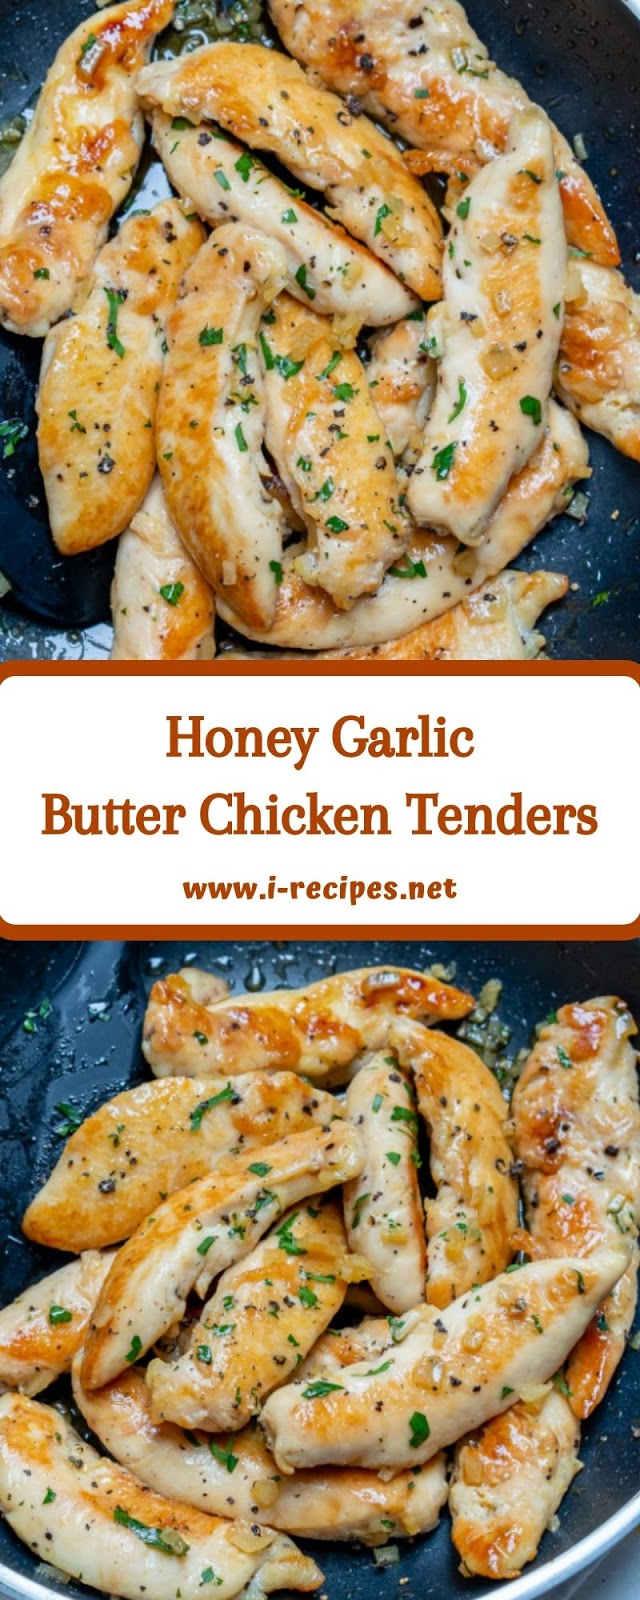 Honey Garlic Butter Chicken Tenders